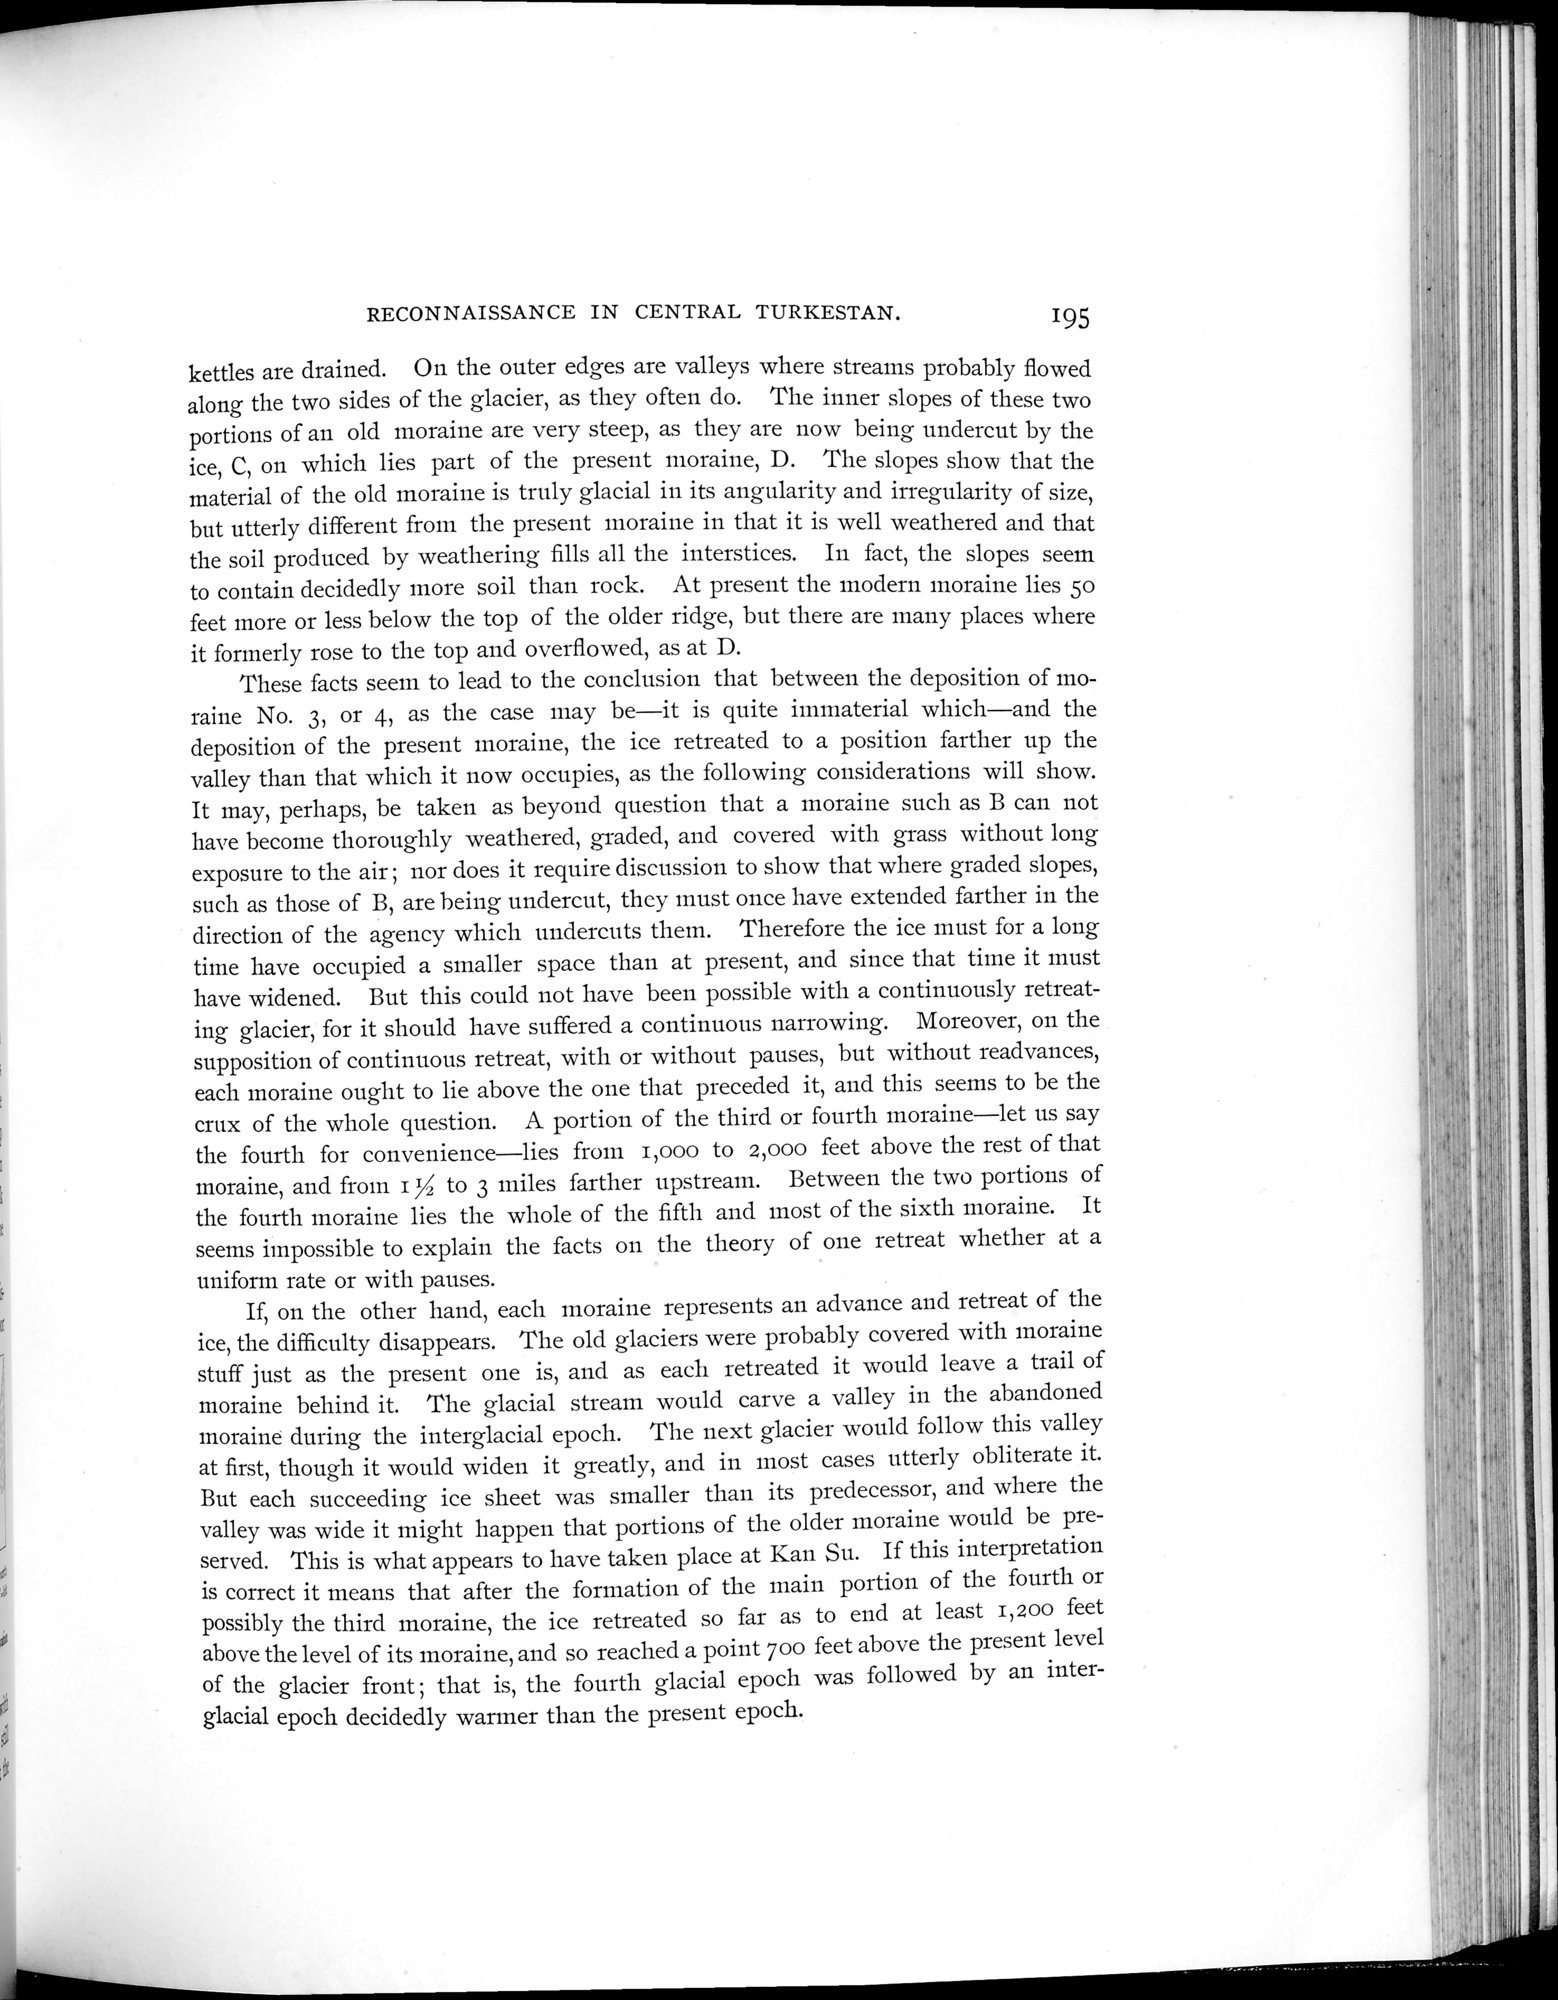 Explorations in Turkestan 1903 : vol.1 / Page 225 (Grayscale High Resolution Image)